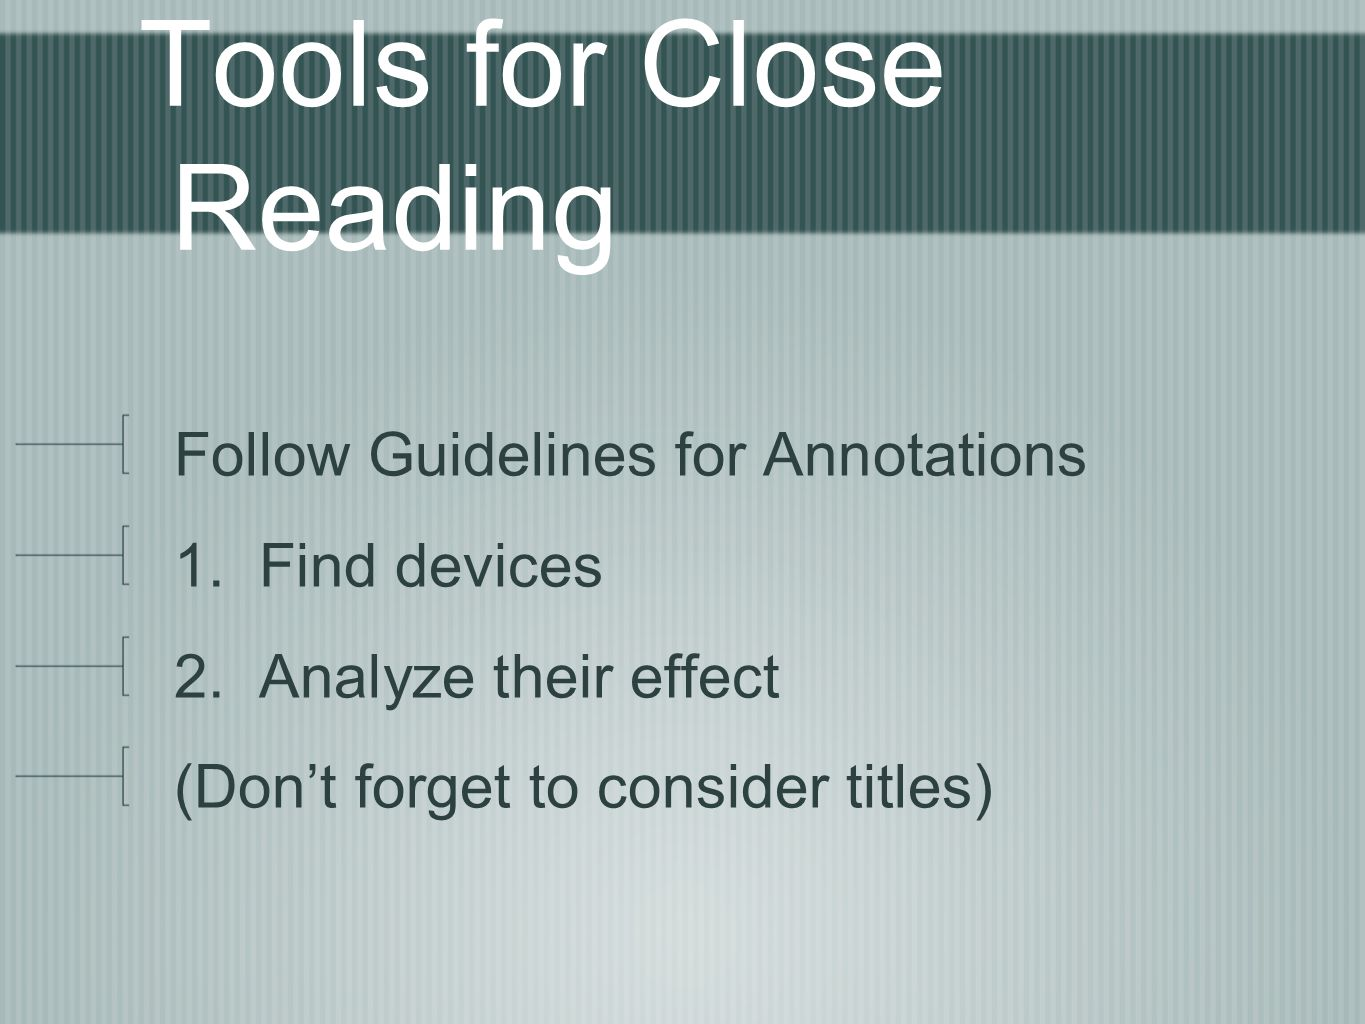 Tools for Close Reading